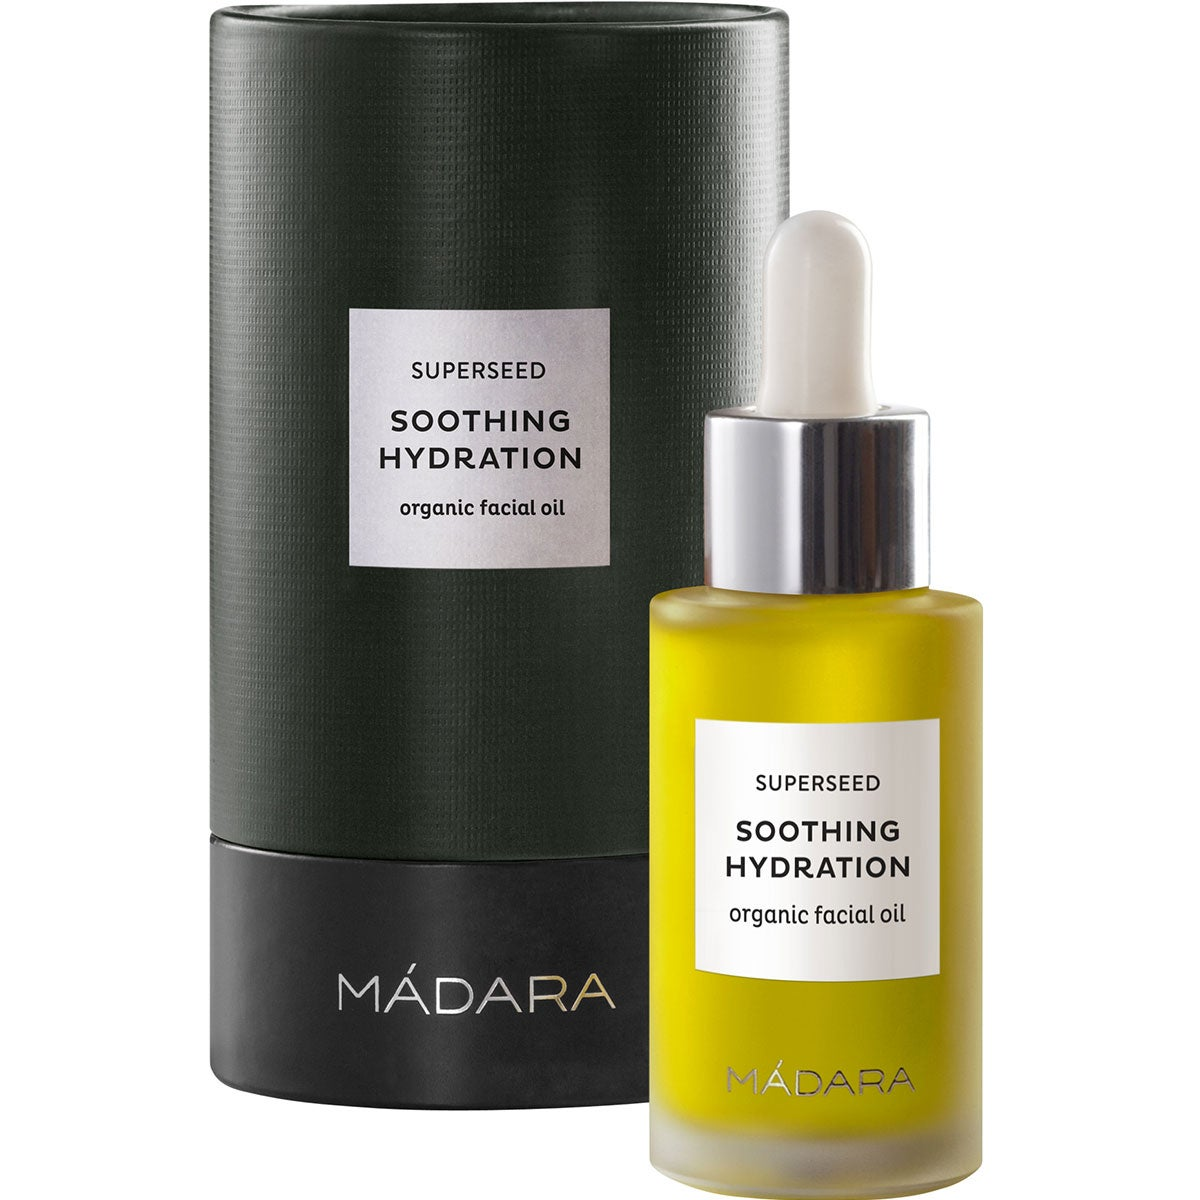 MÁDARA ecocosmetics Madara Superseed Soothing Hydration Beauty Oil